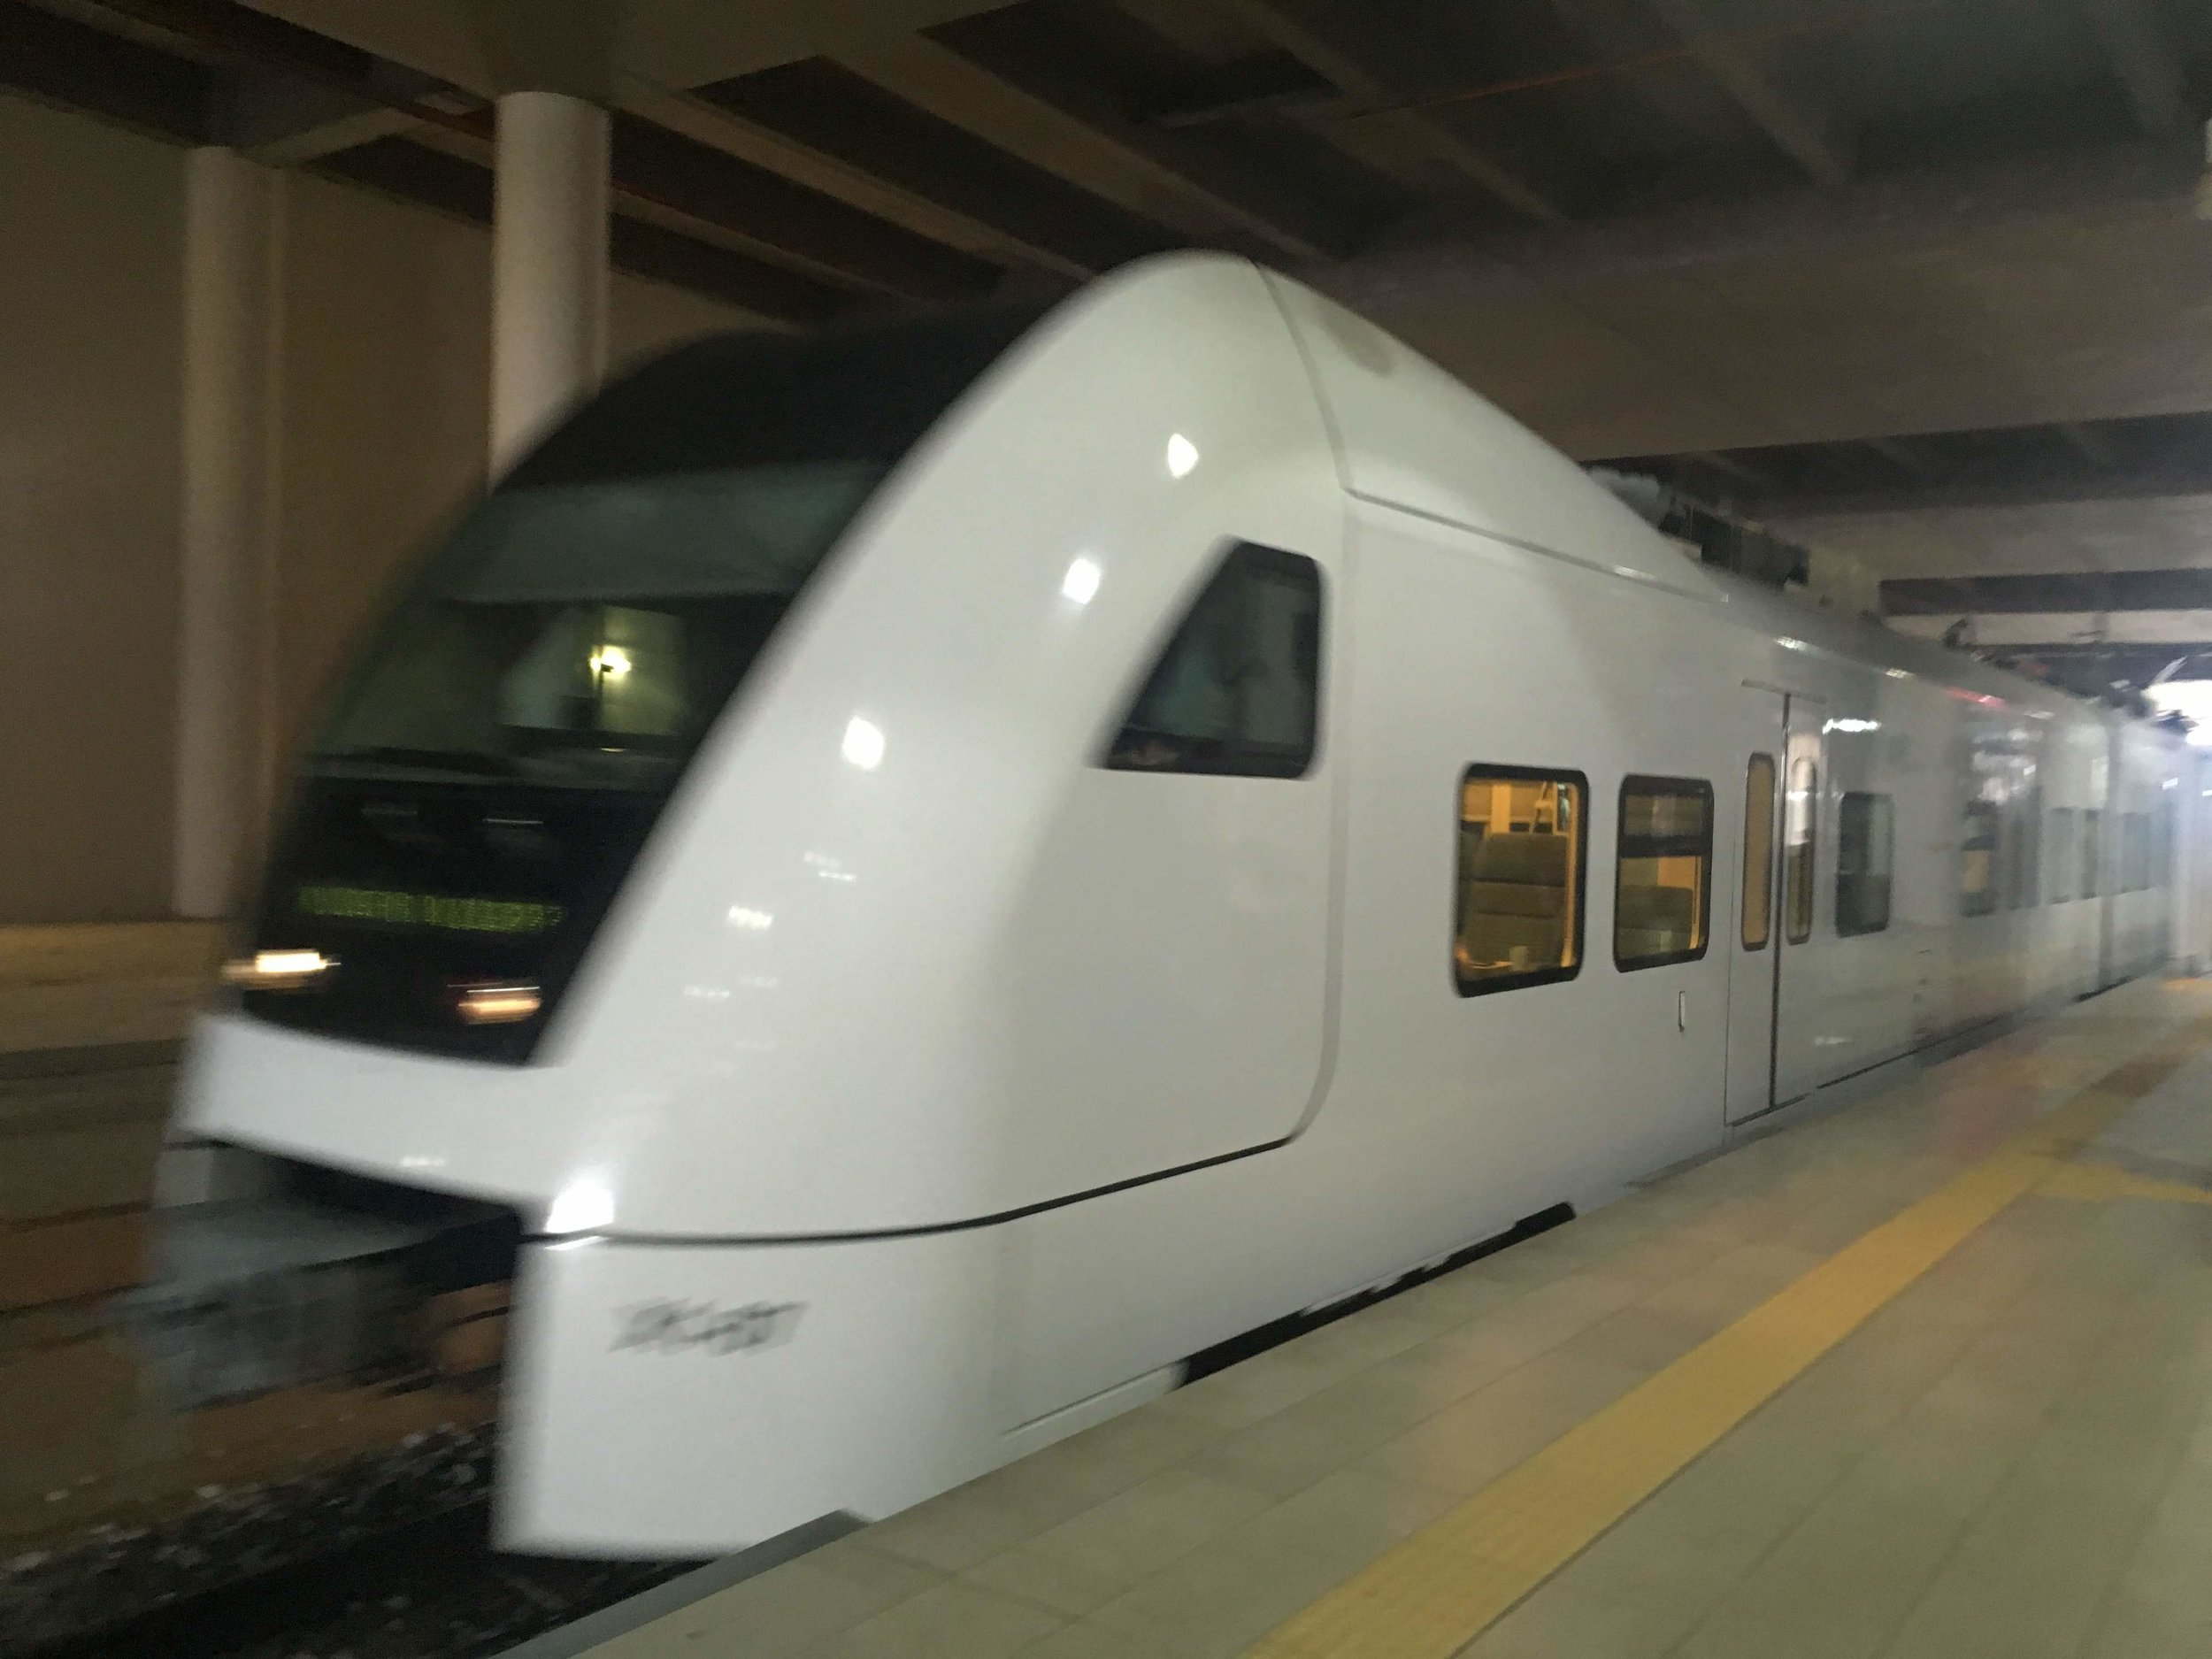 the KLIA Ekspress train arriving at Kuala Lumpur International Airport